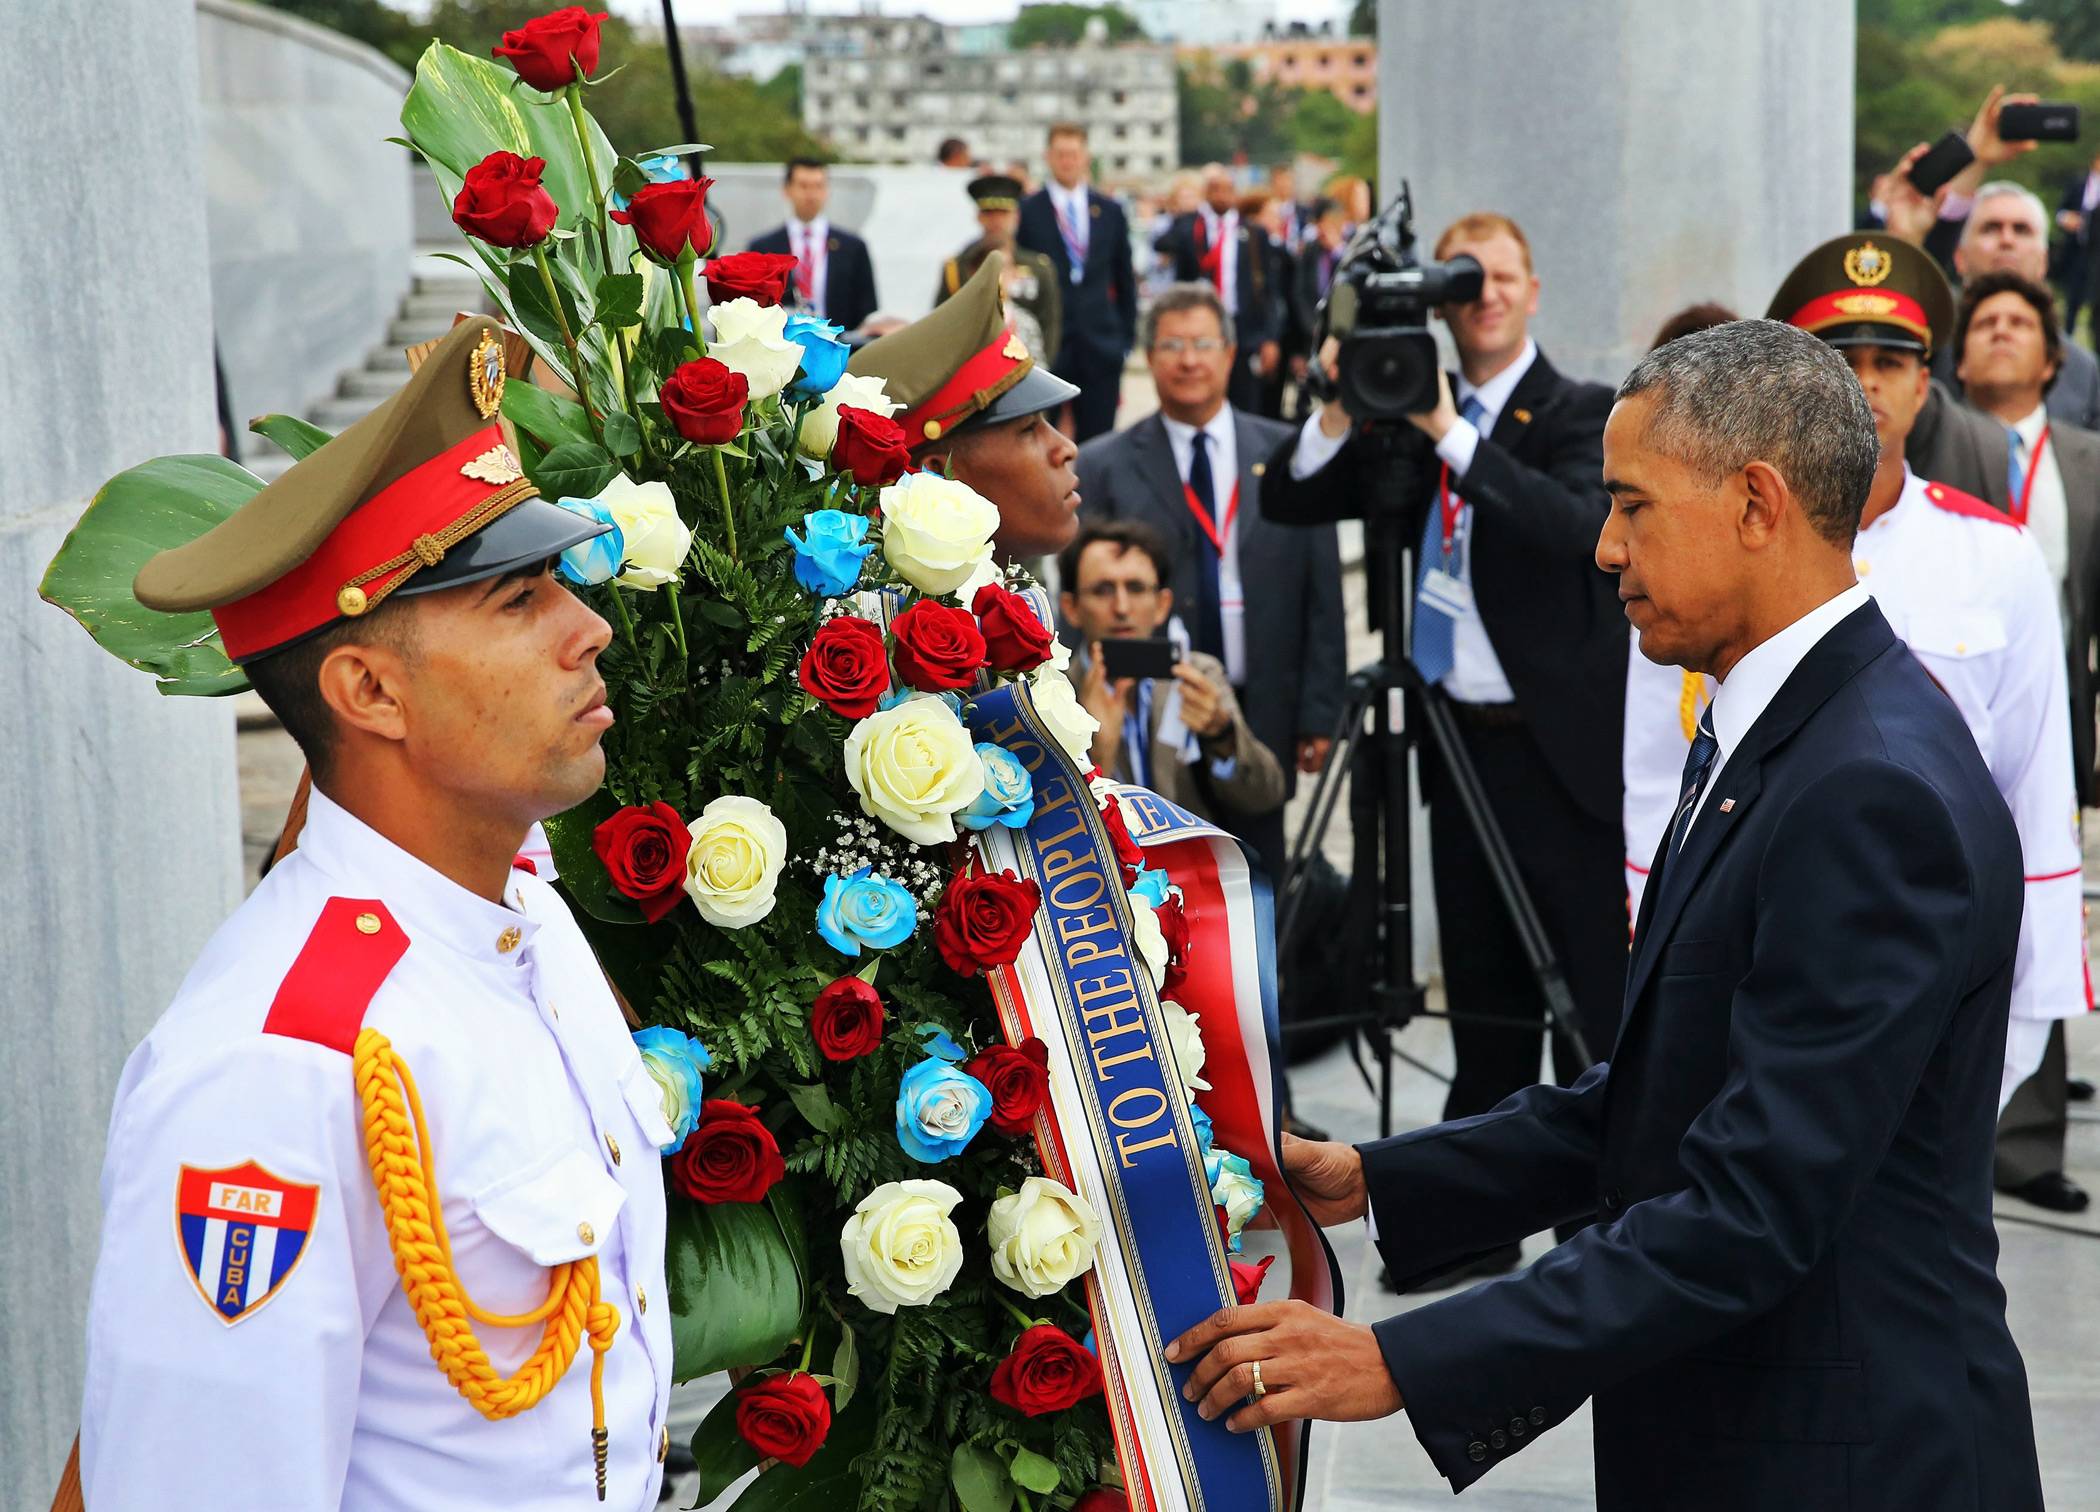 President Barack Obama lays a wreath for Cuban hero Jose Marti at Revolution Square in Havana, on March 21, 2016.